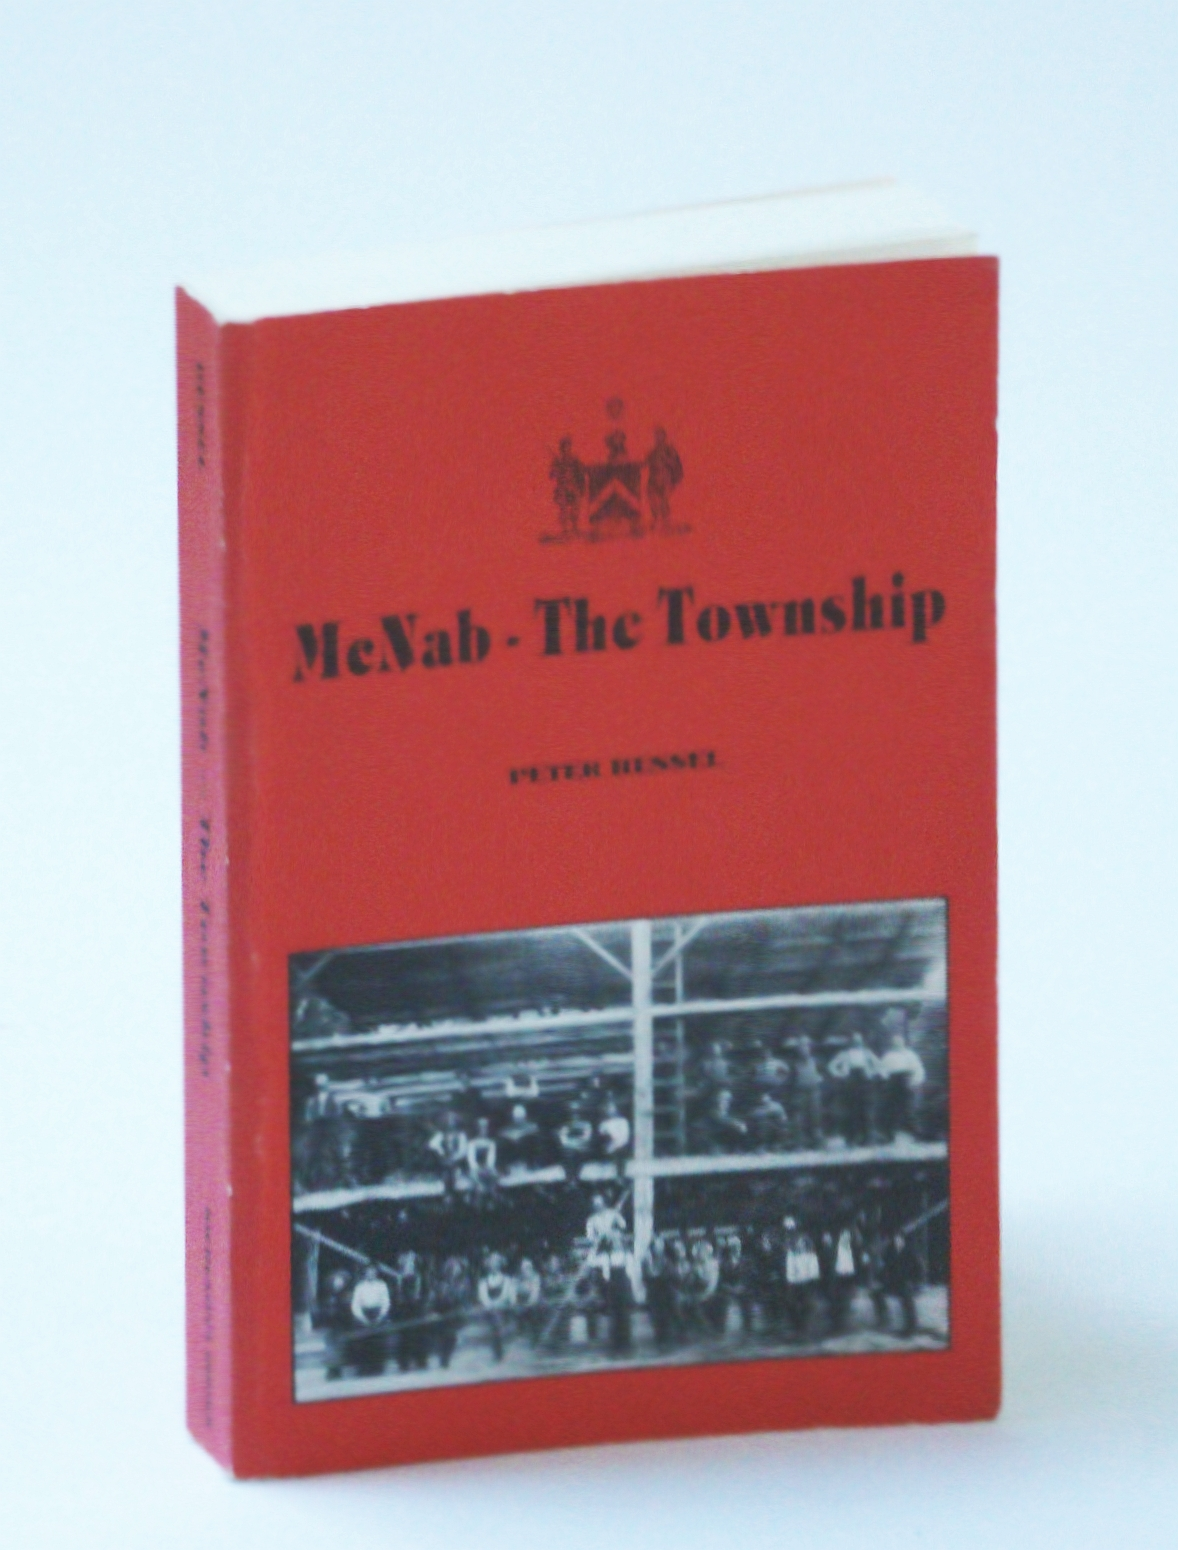 Image for McNab - The Township: A history of McNab Township in Renfrew County, Ontario, from earliest beginnings to World War II